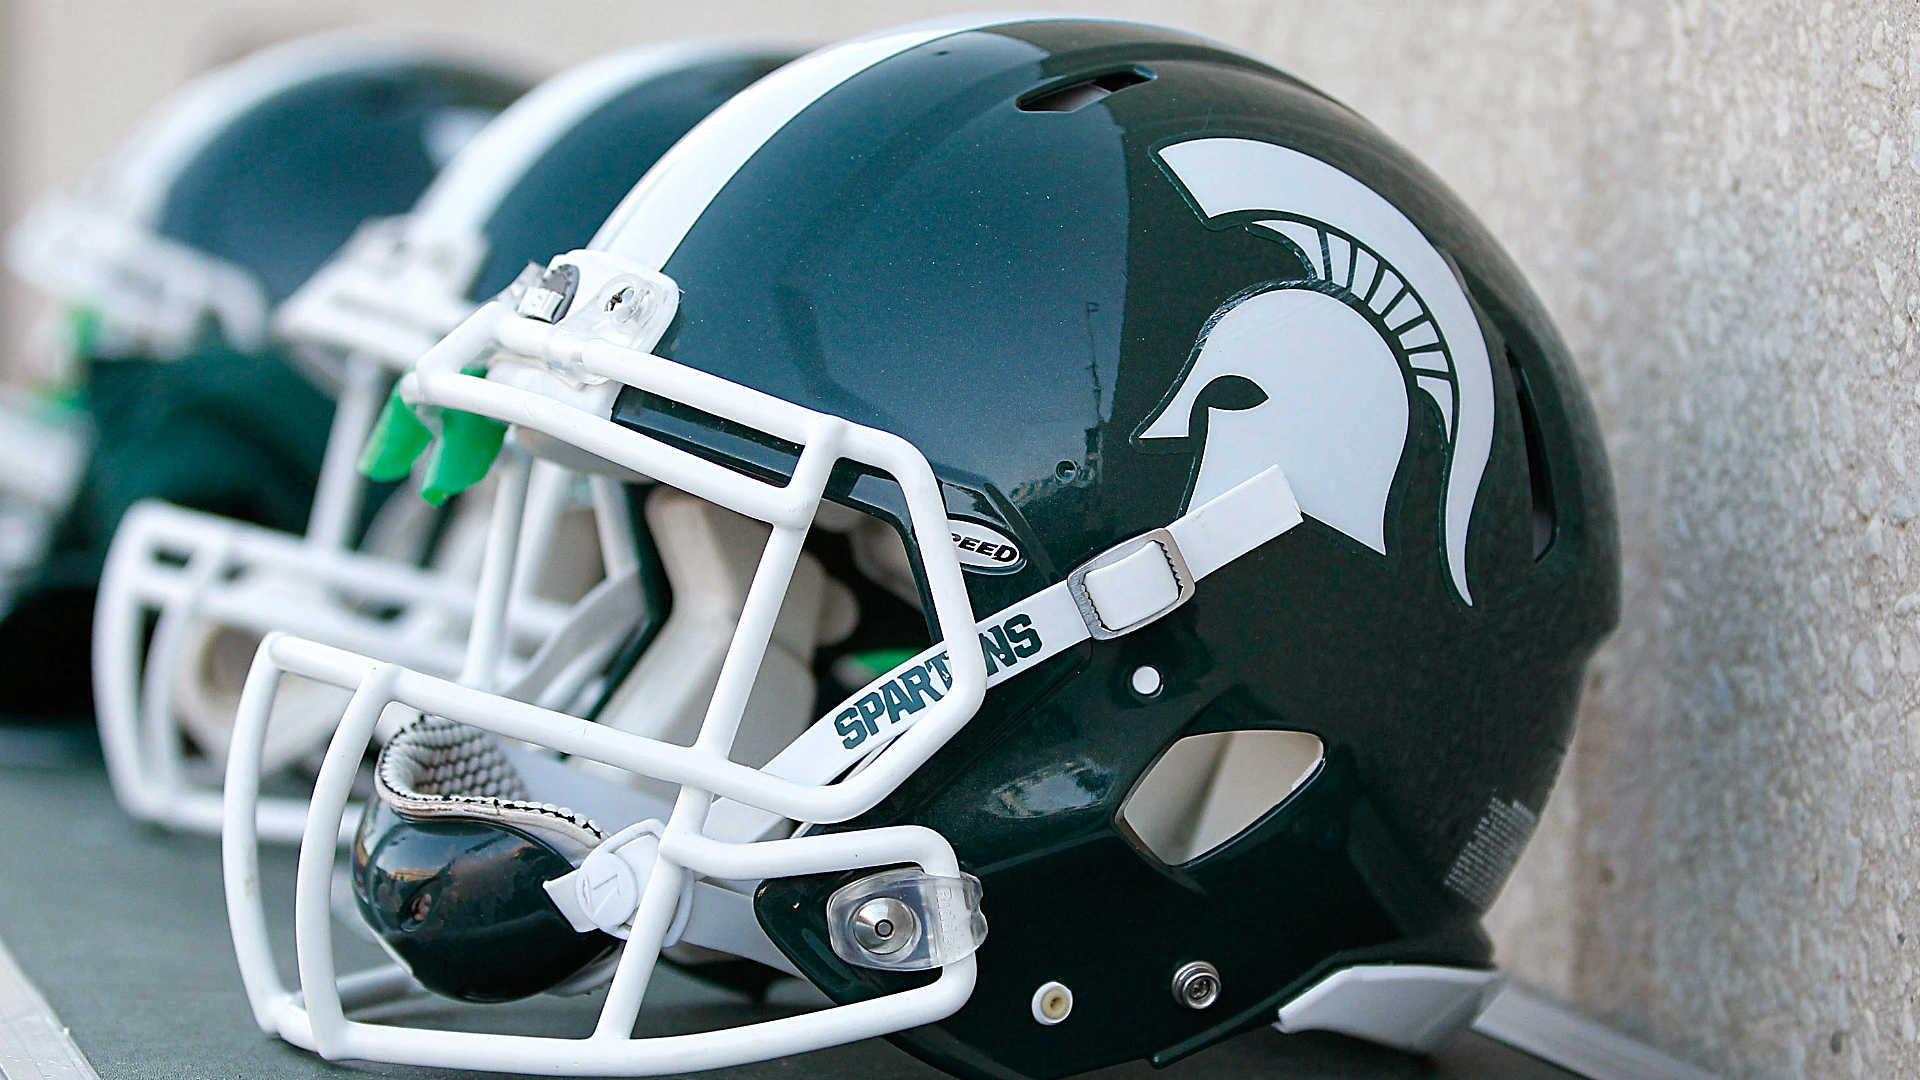 Michigan State players accused of assault violated policy